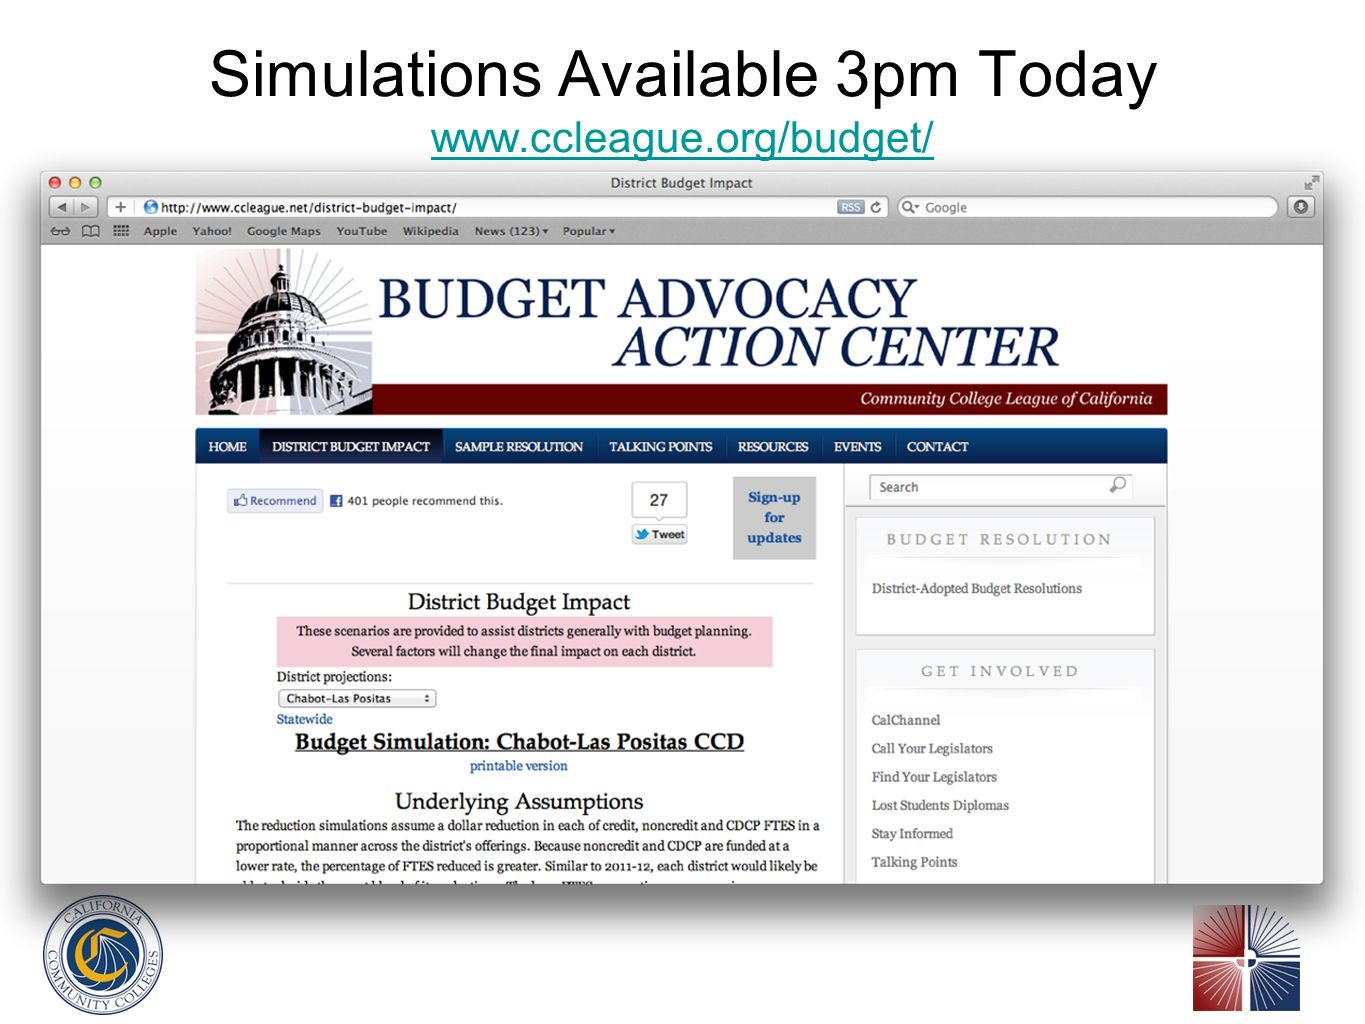 Simulations Available 3pm Today www.ccleague.org/budget/ www.ccleague.org/budget/